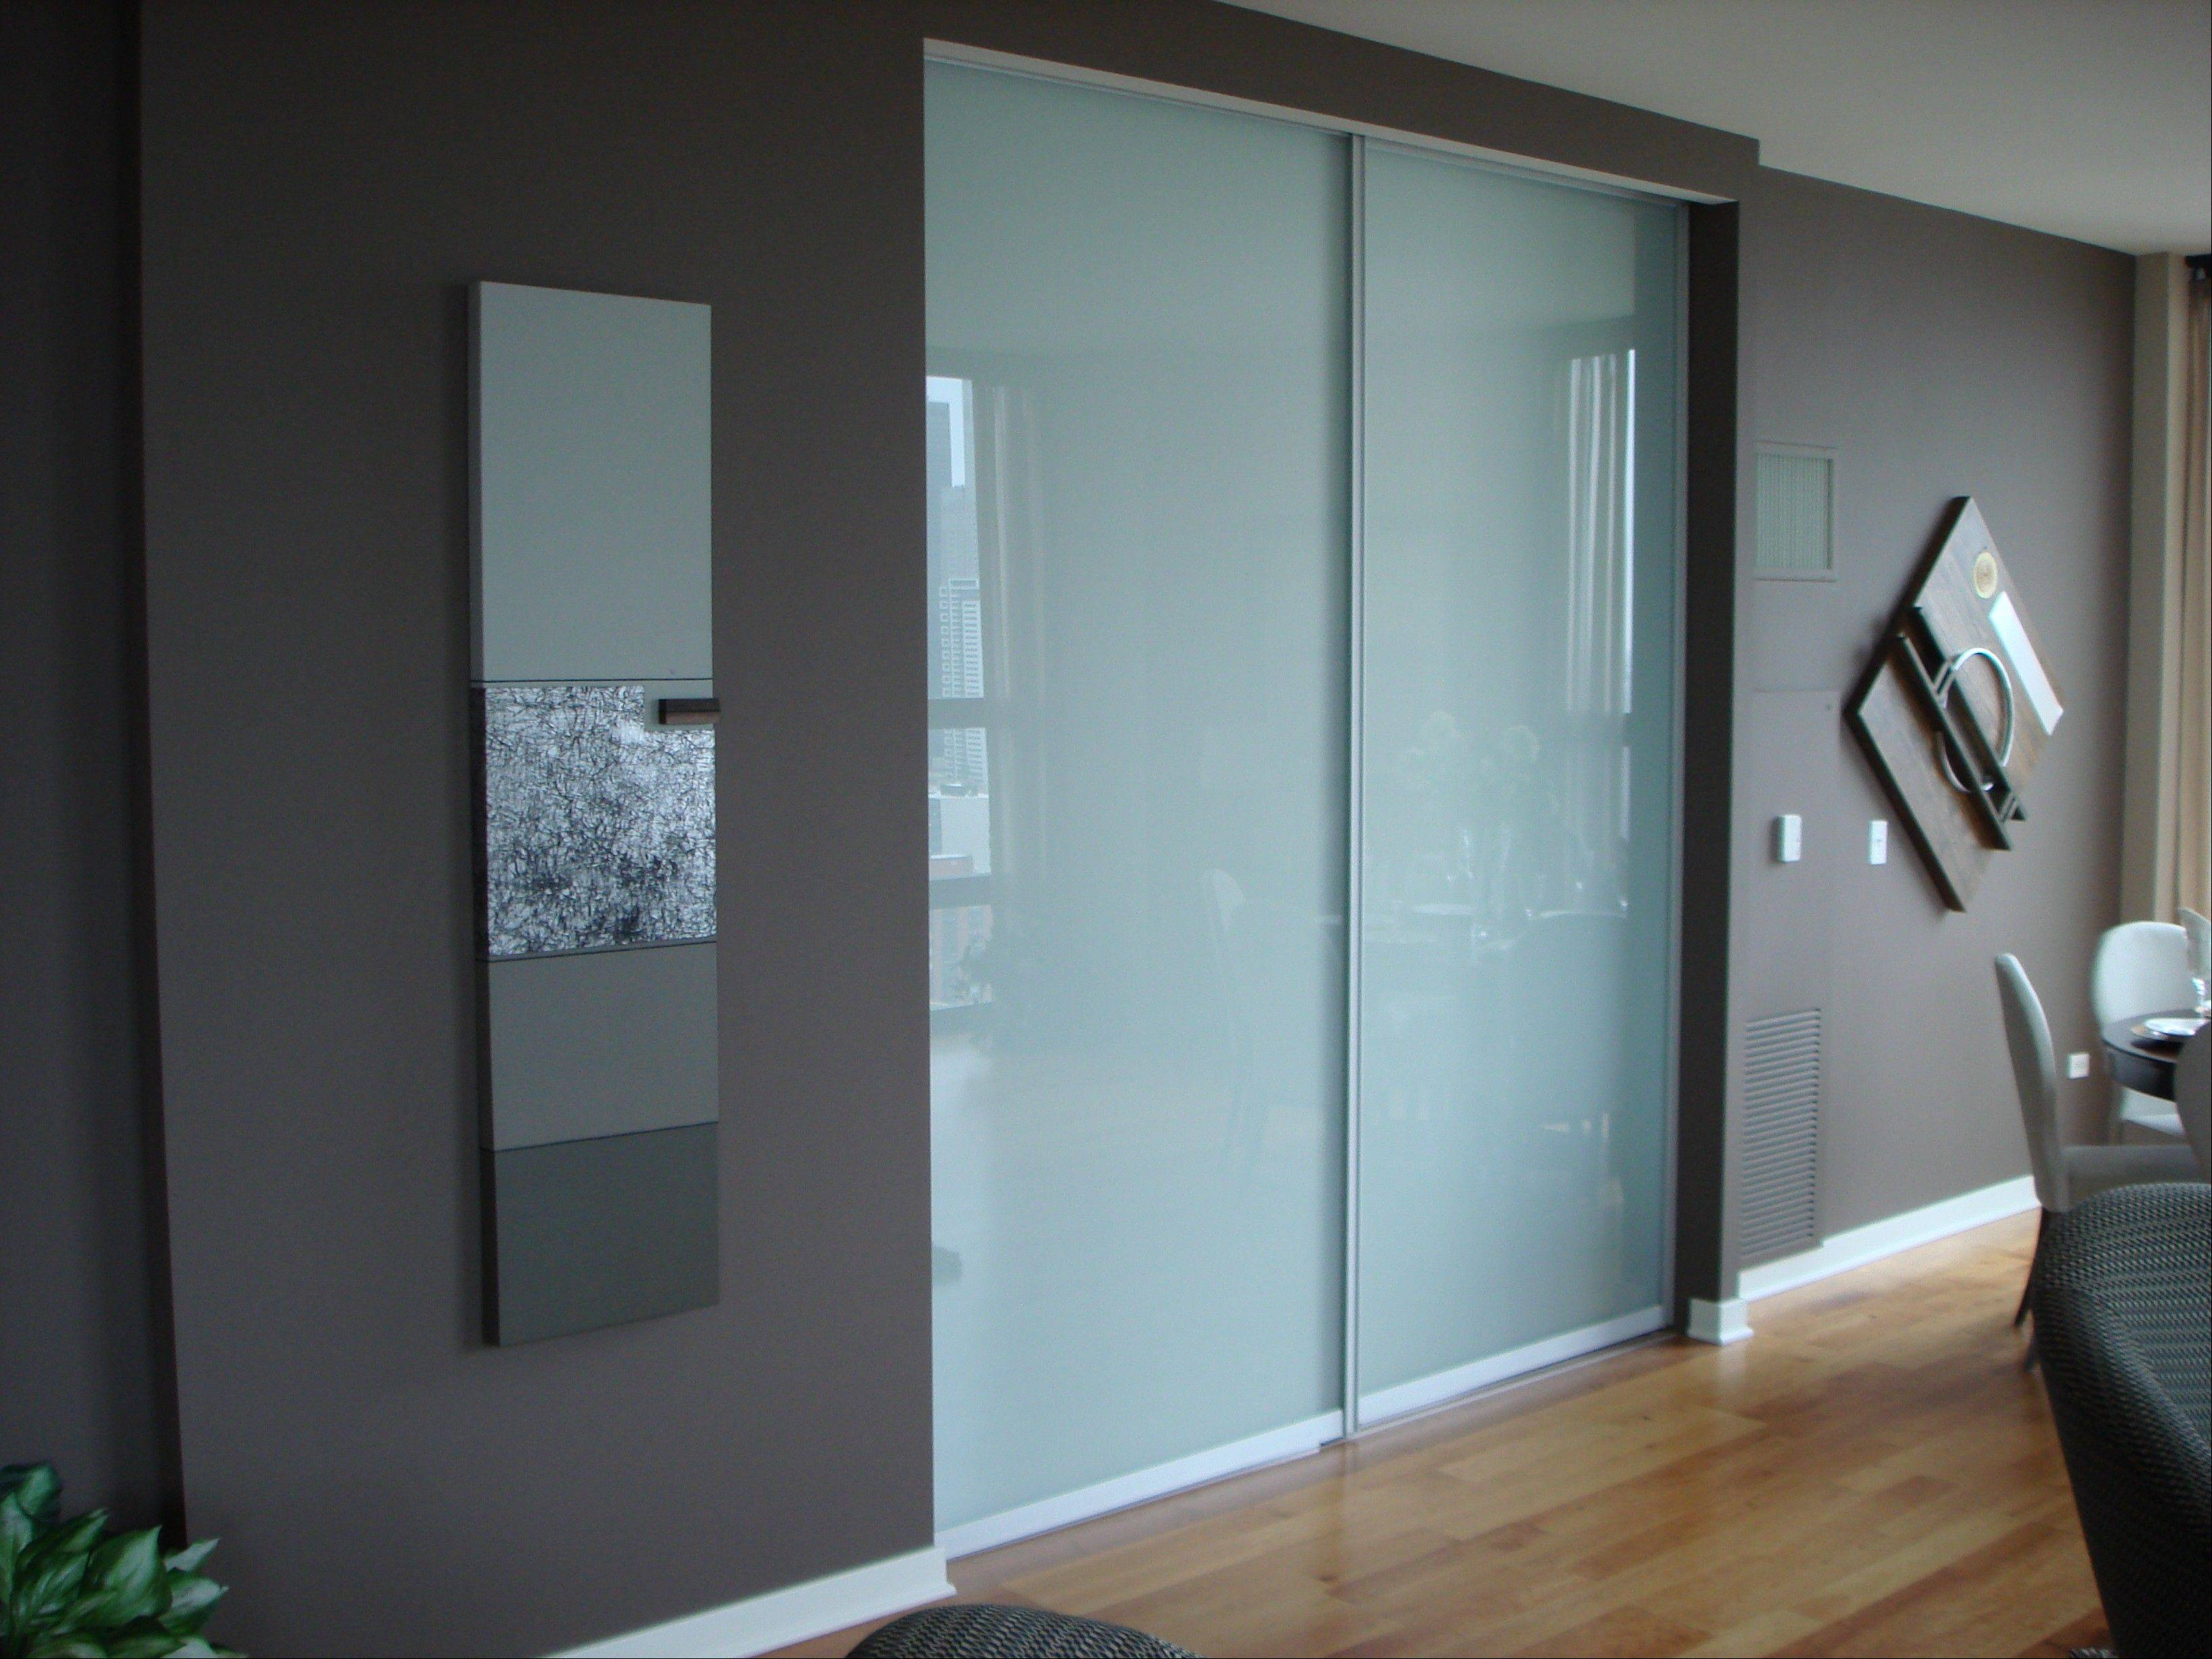 Creative Mirror and Shower makes glass pocket doors and room dividers that slide open into the wall.